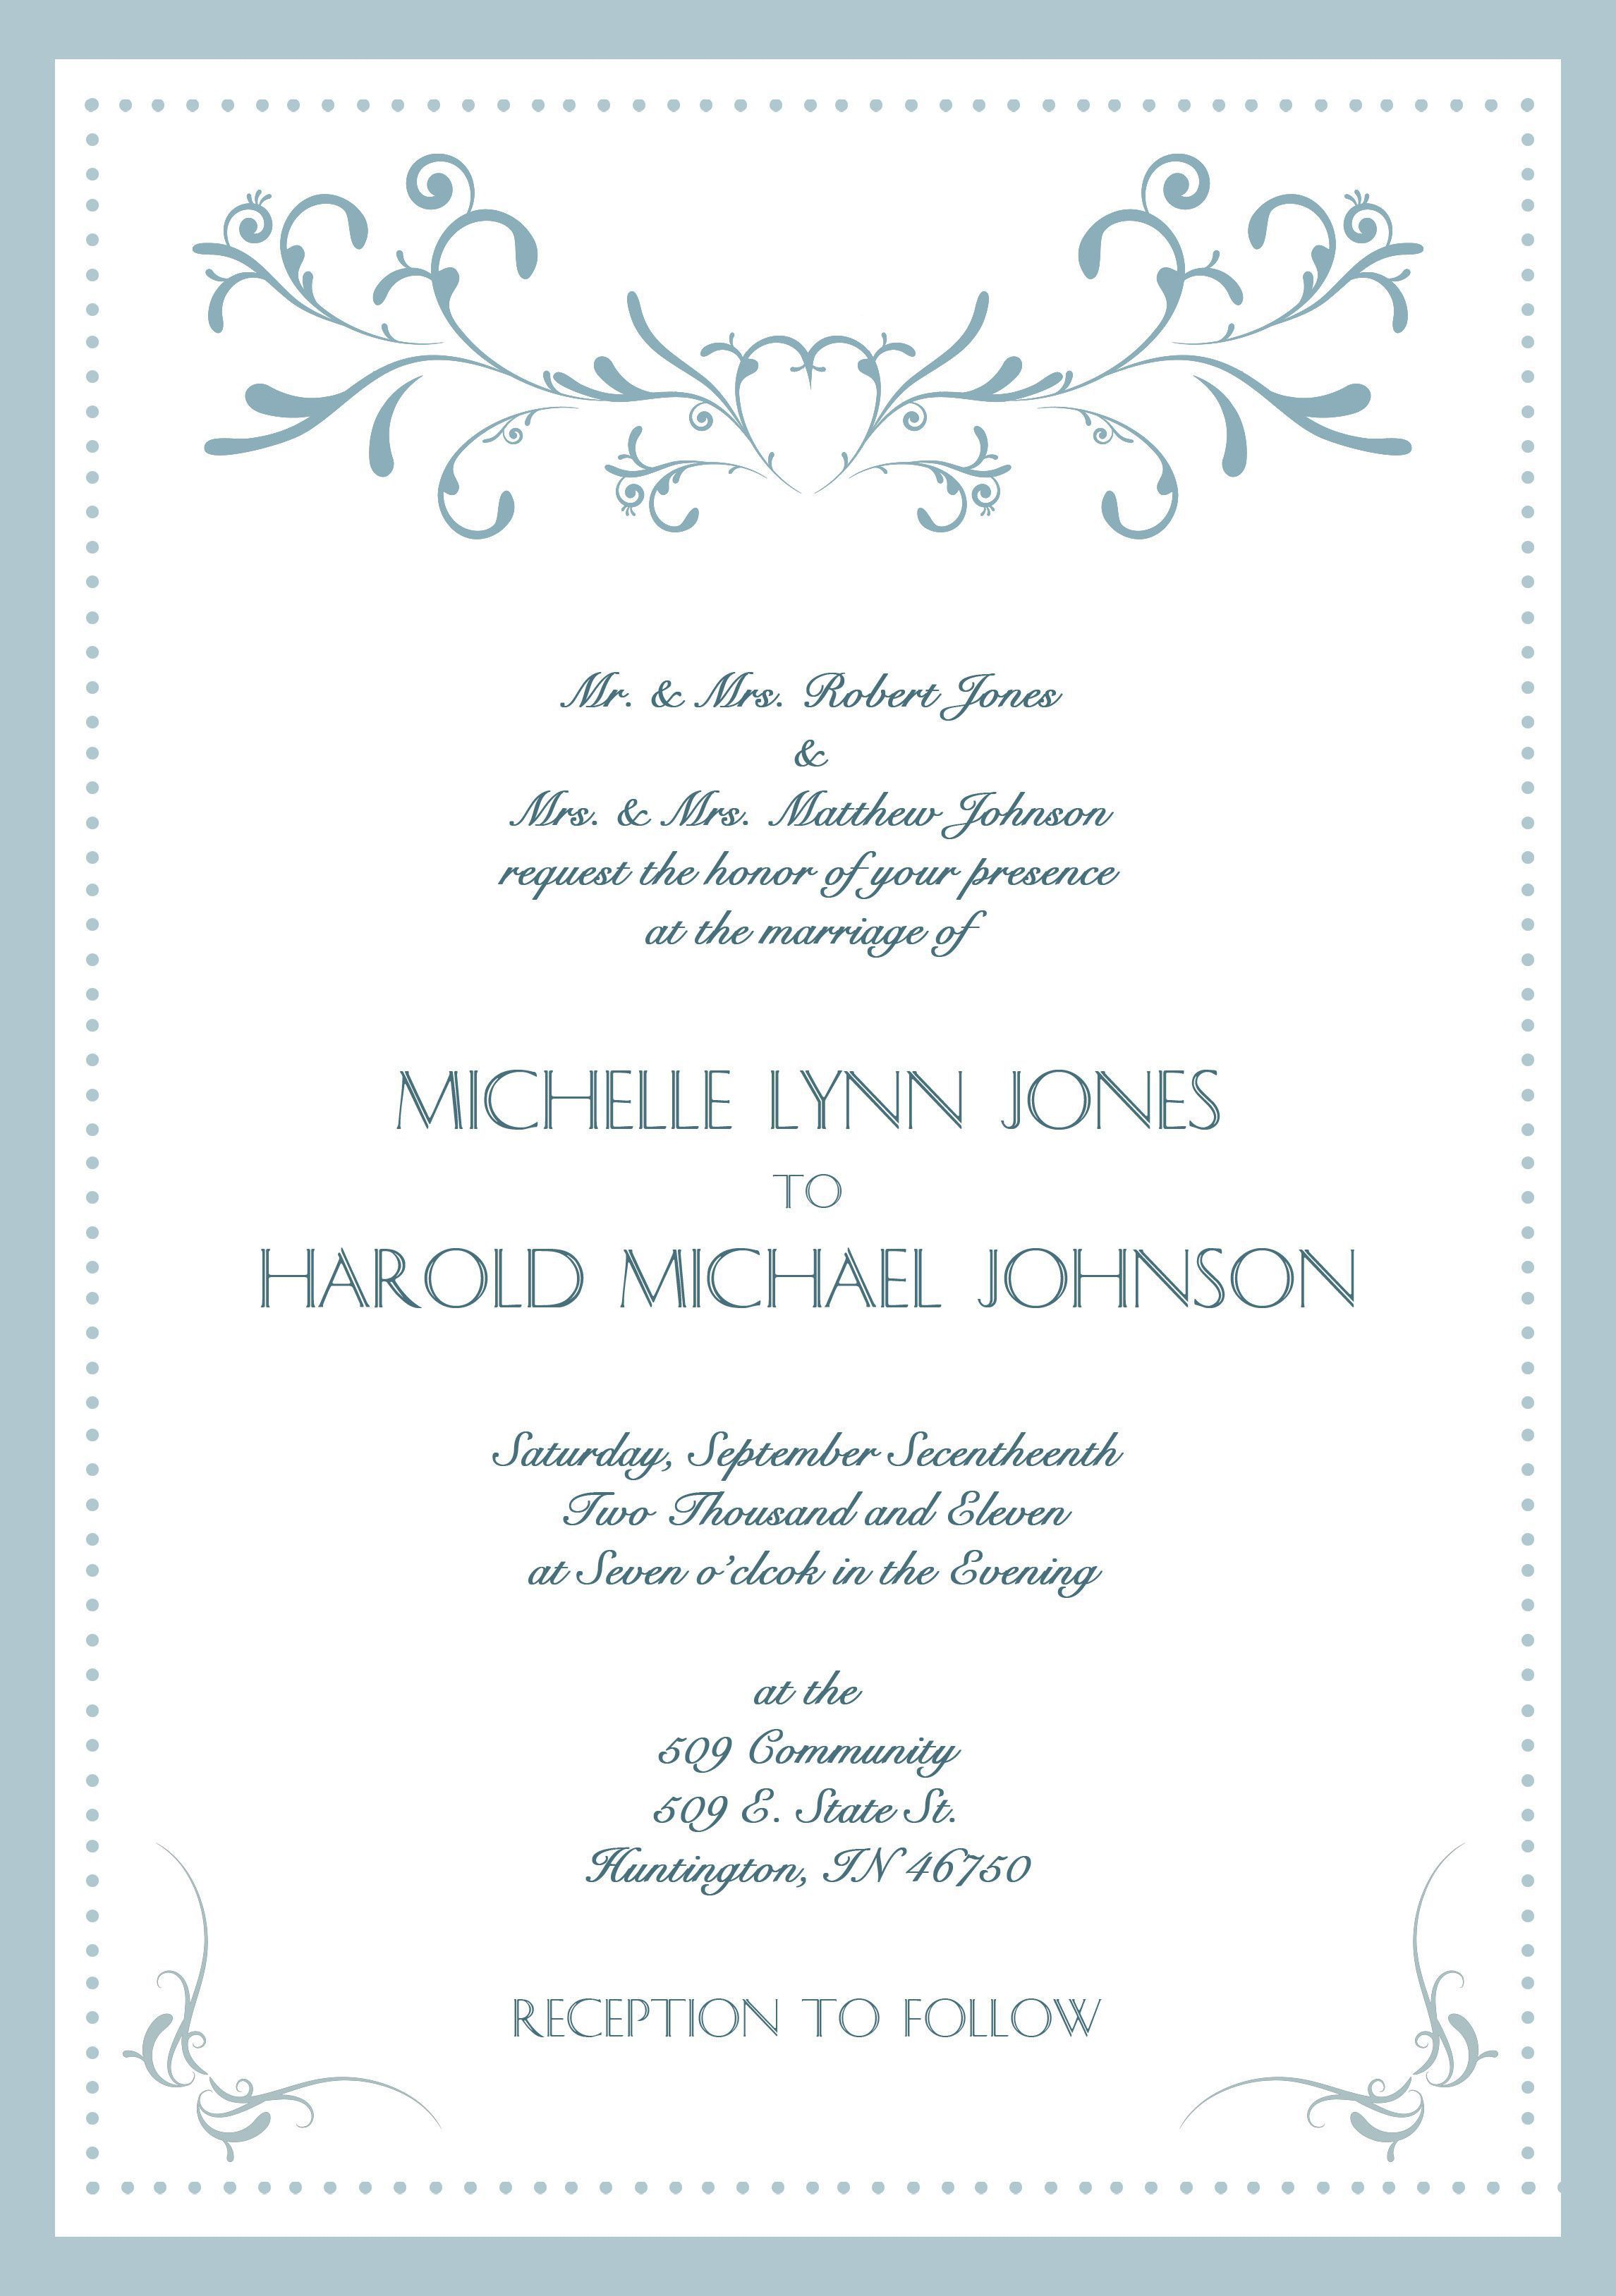 Samples Of Wedding Invitations Cards Wording Invitation Photo